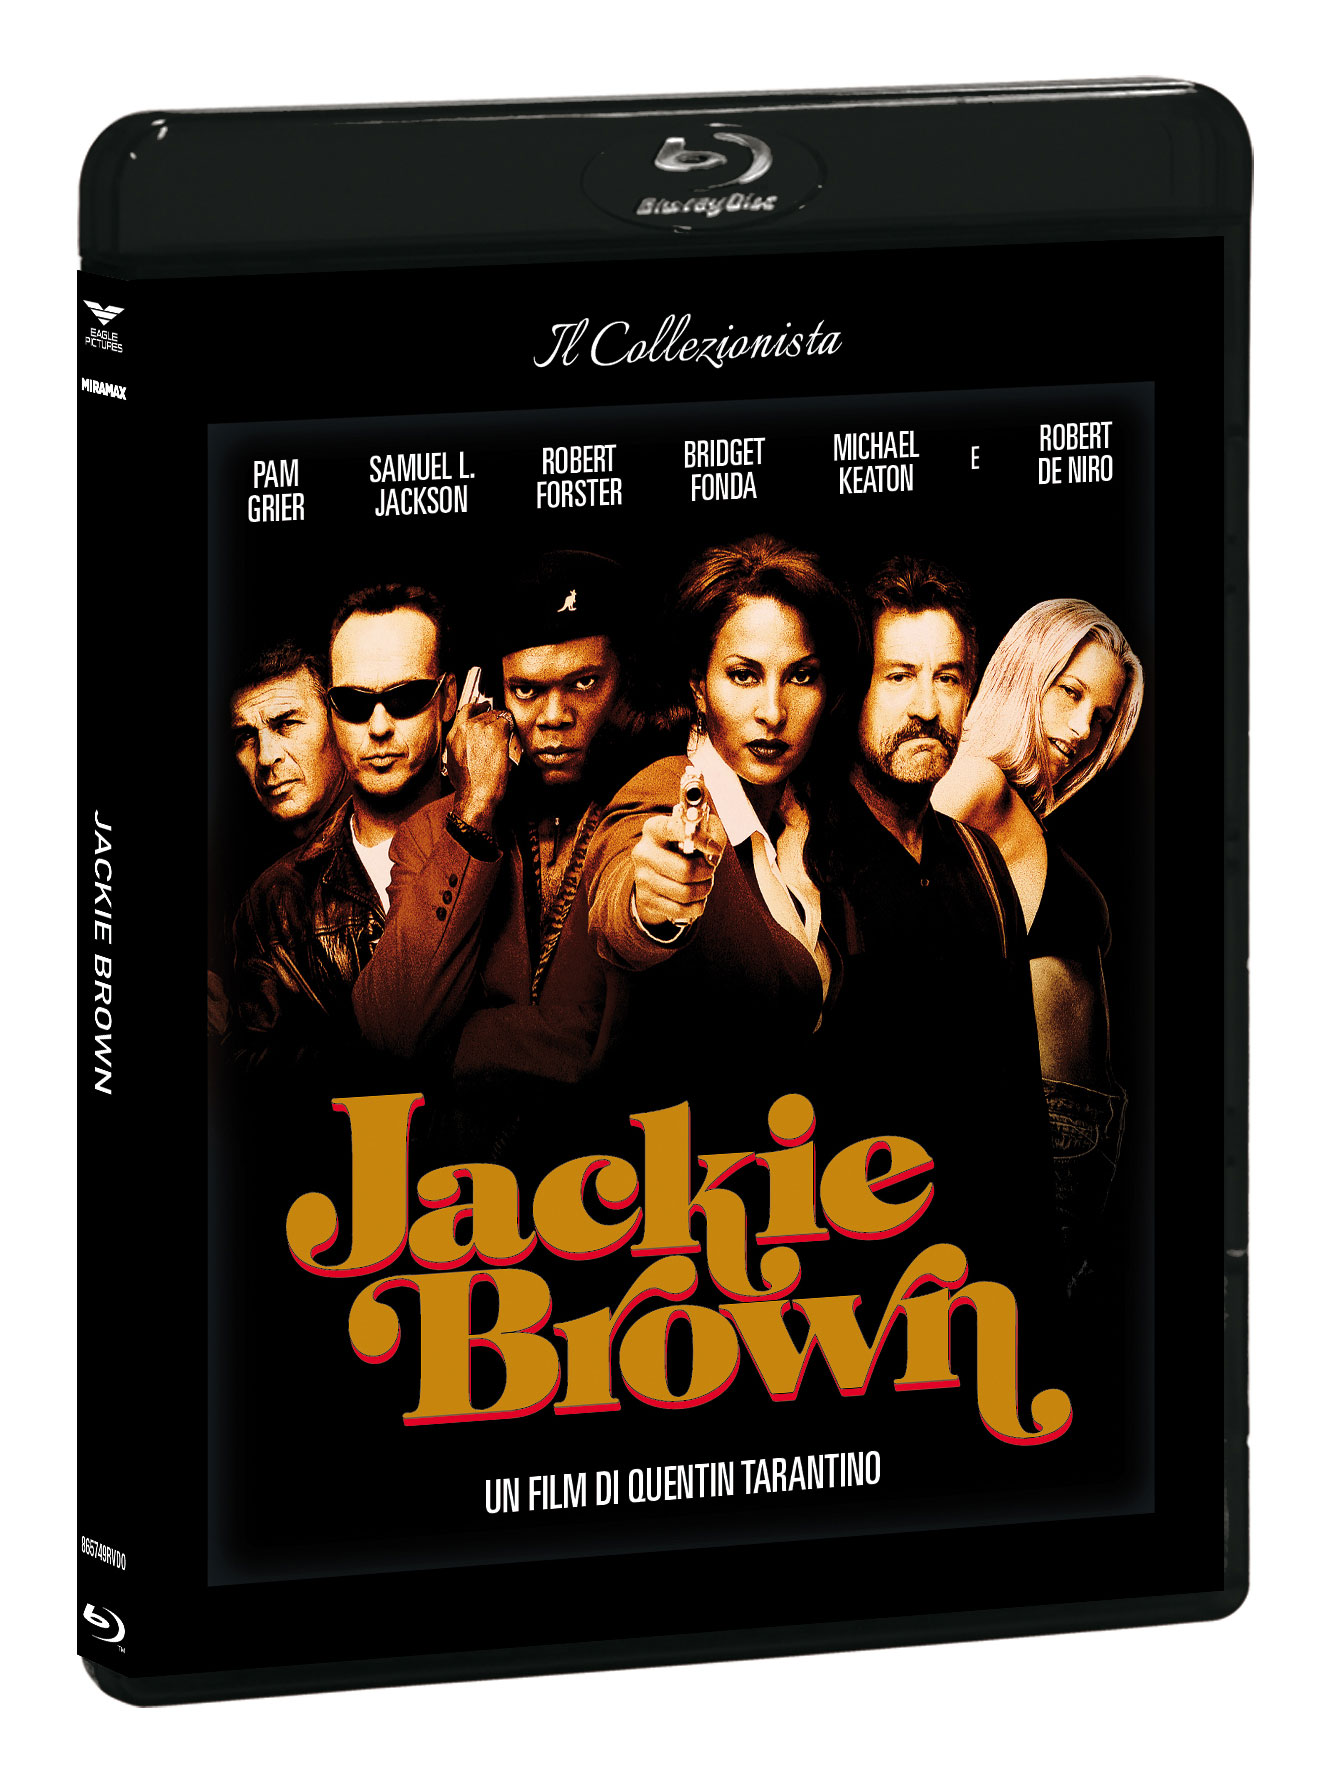 JACKIE BROWN (IL COLLEZIONISTA) (BLU-RAY+DVD+CARD RICETTA)